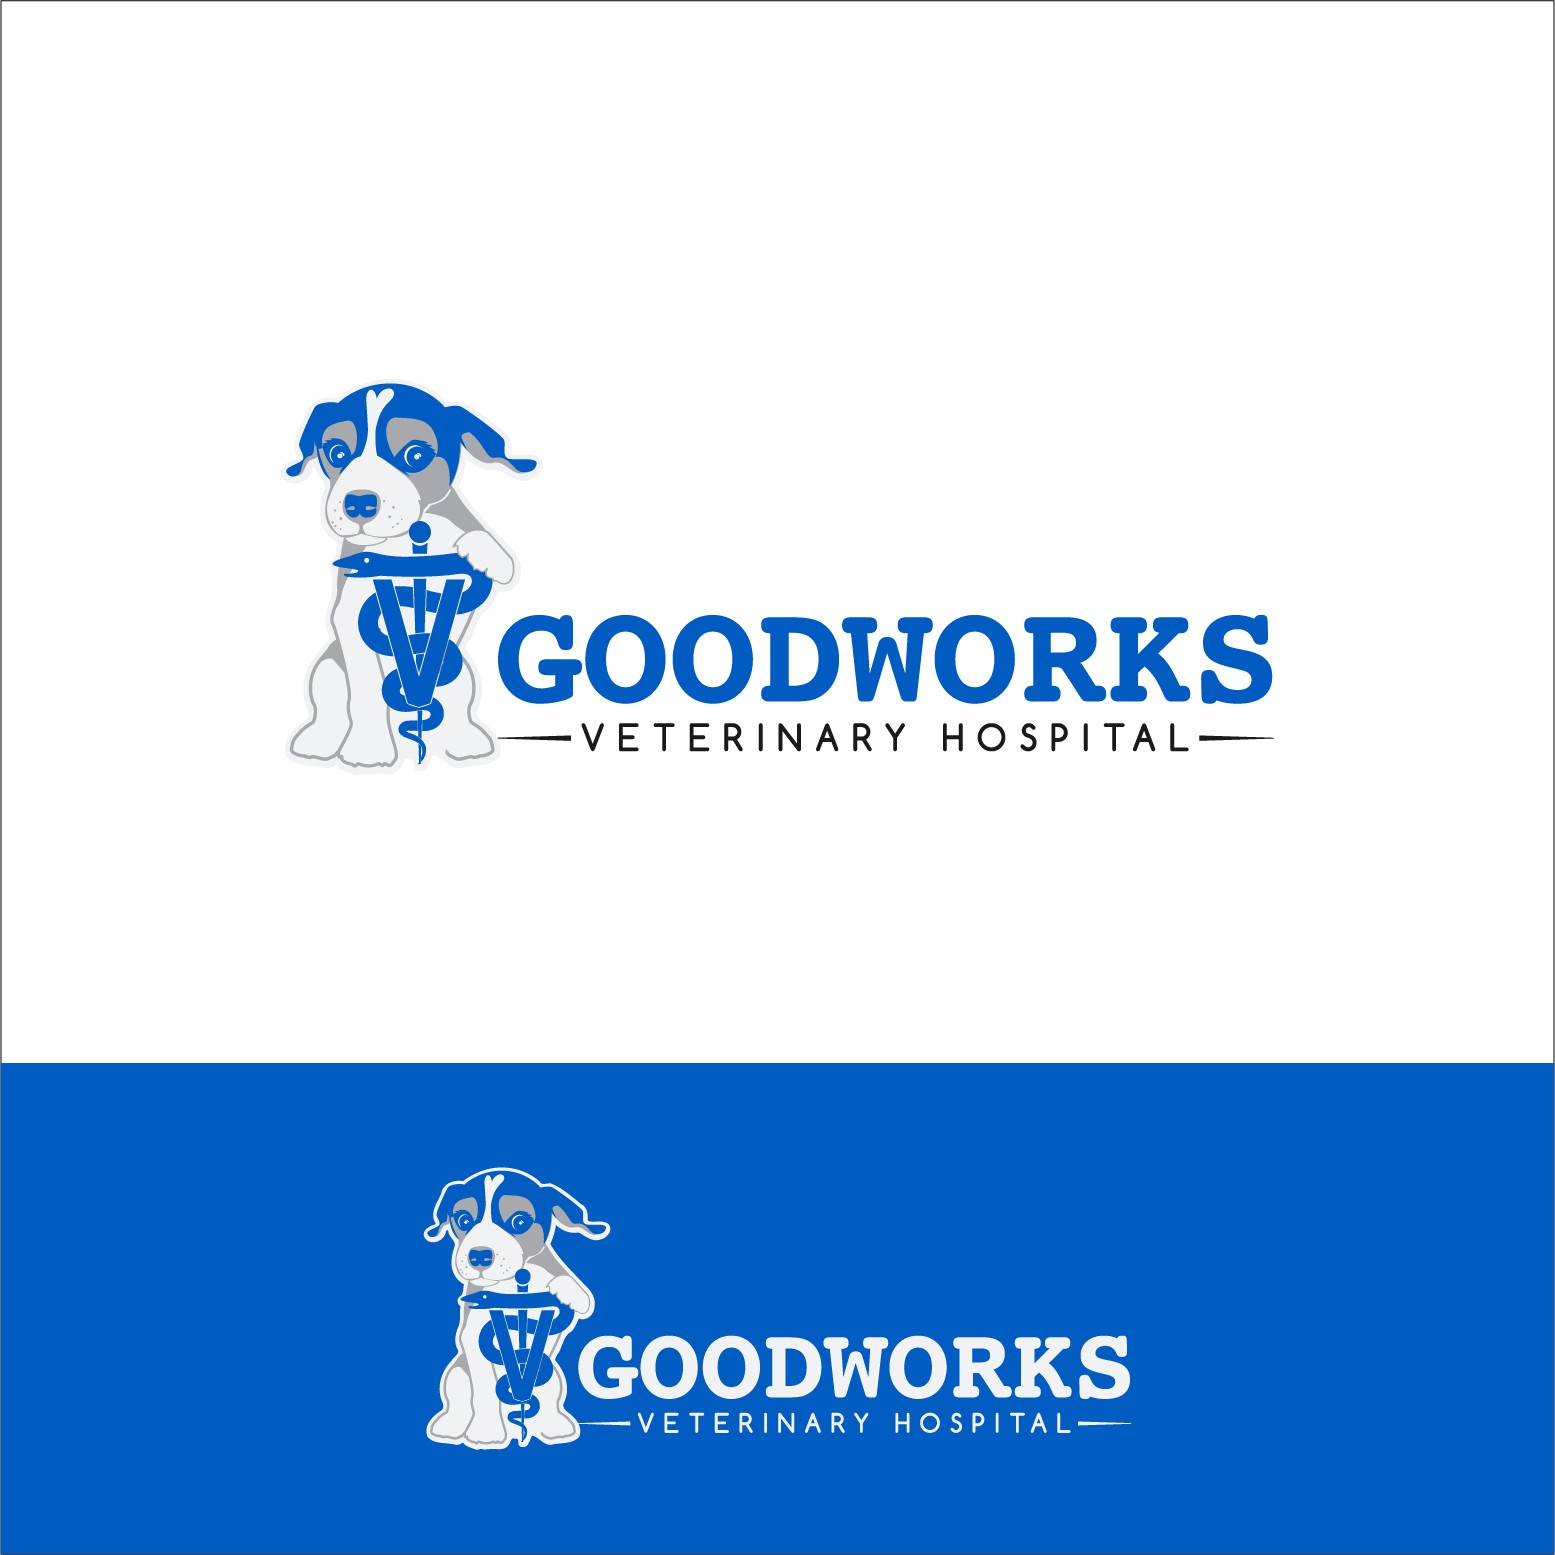 Veterinary Hospital needs your creative help for an eye catching logo!